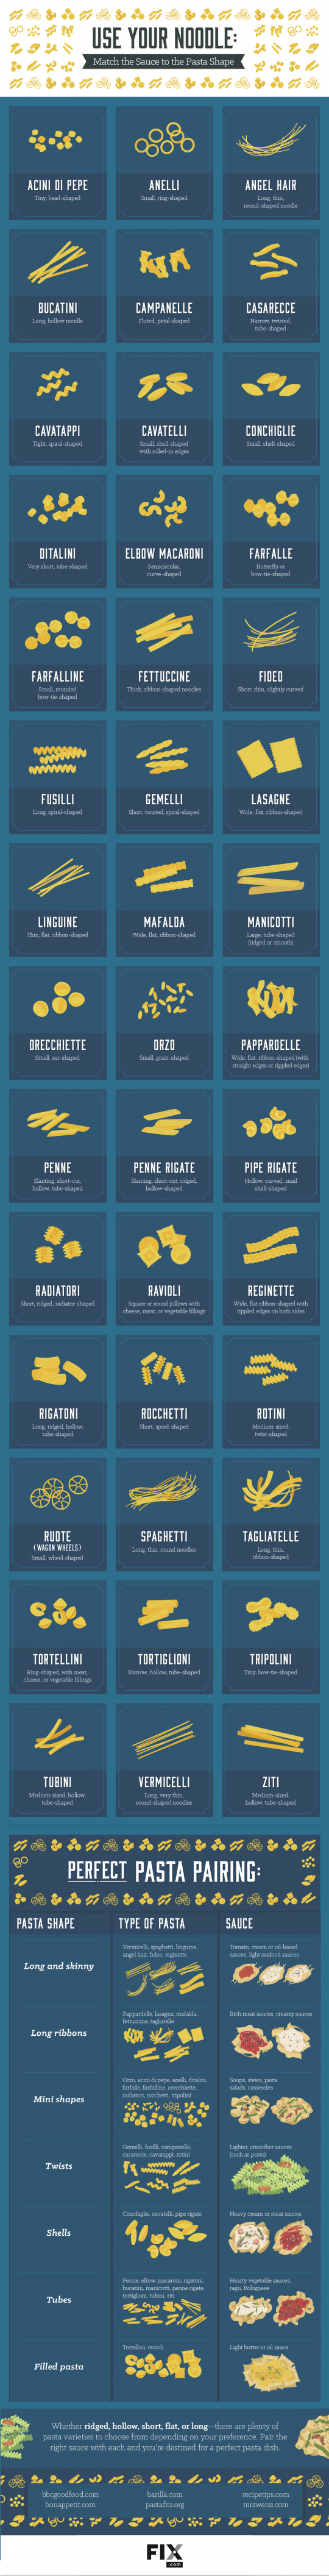 Use Your Noodle: Match the Sauce to the Pasta Shape